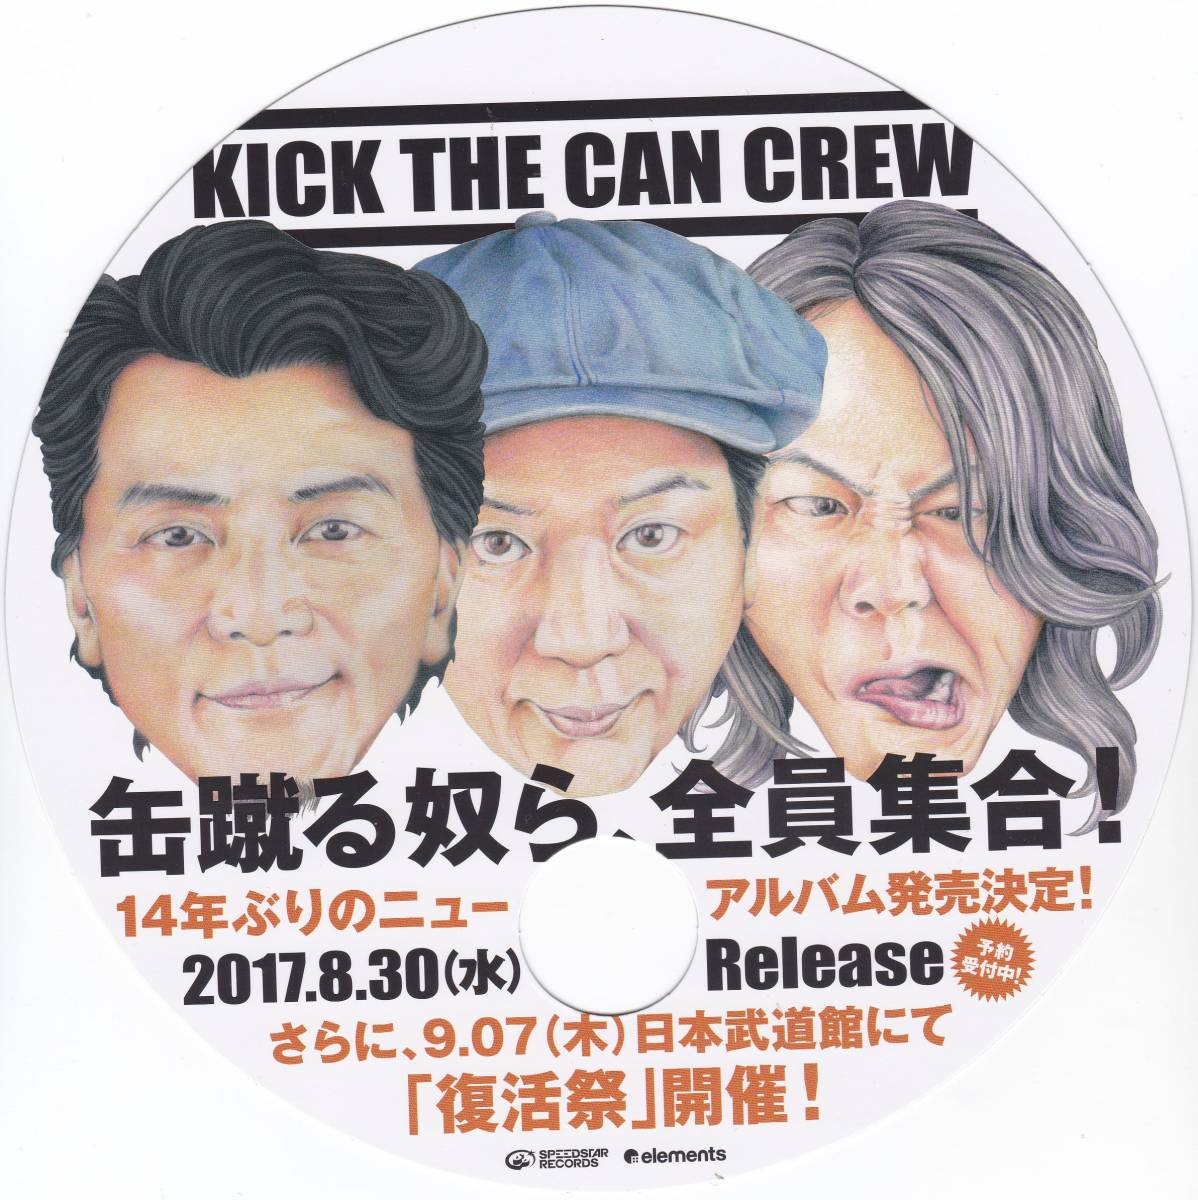 KICK THE CAN CREW キック・ザ・カン・クルー 【うちわ】